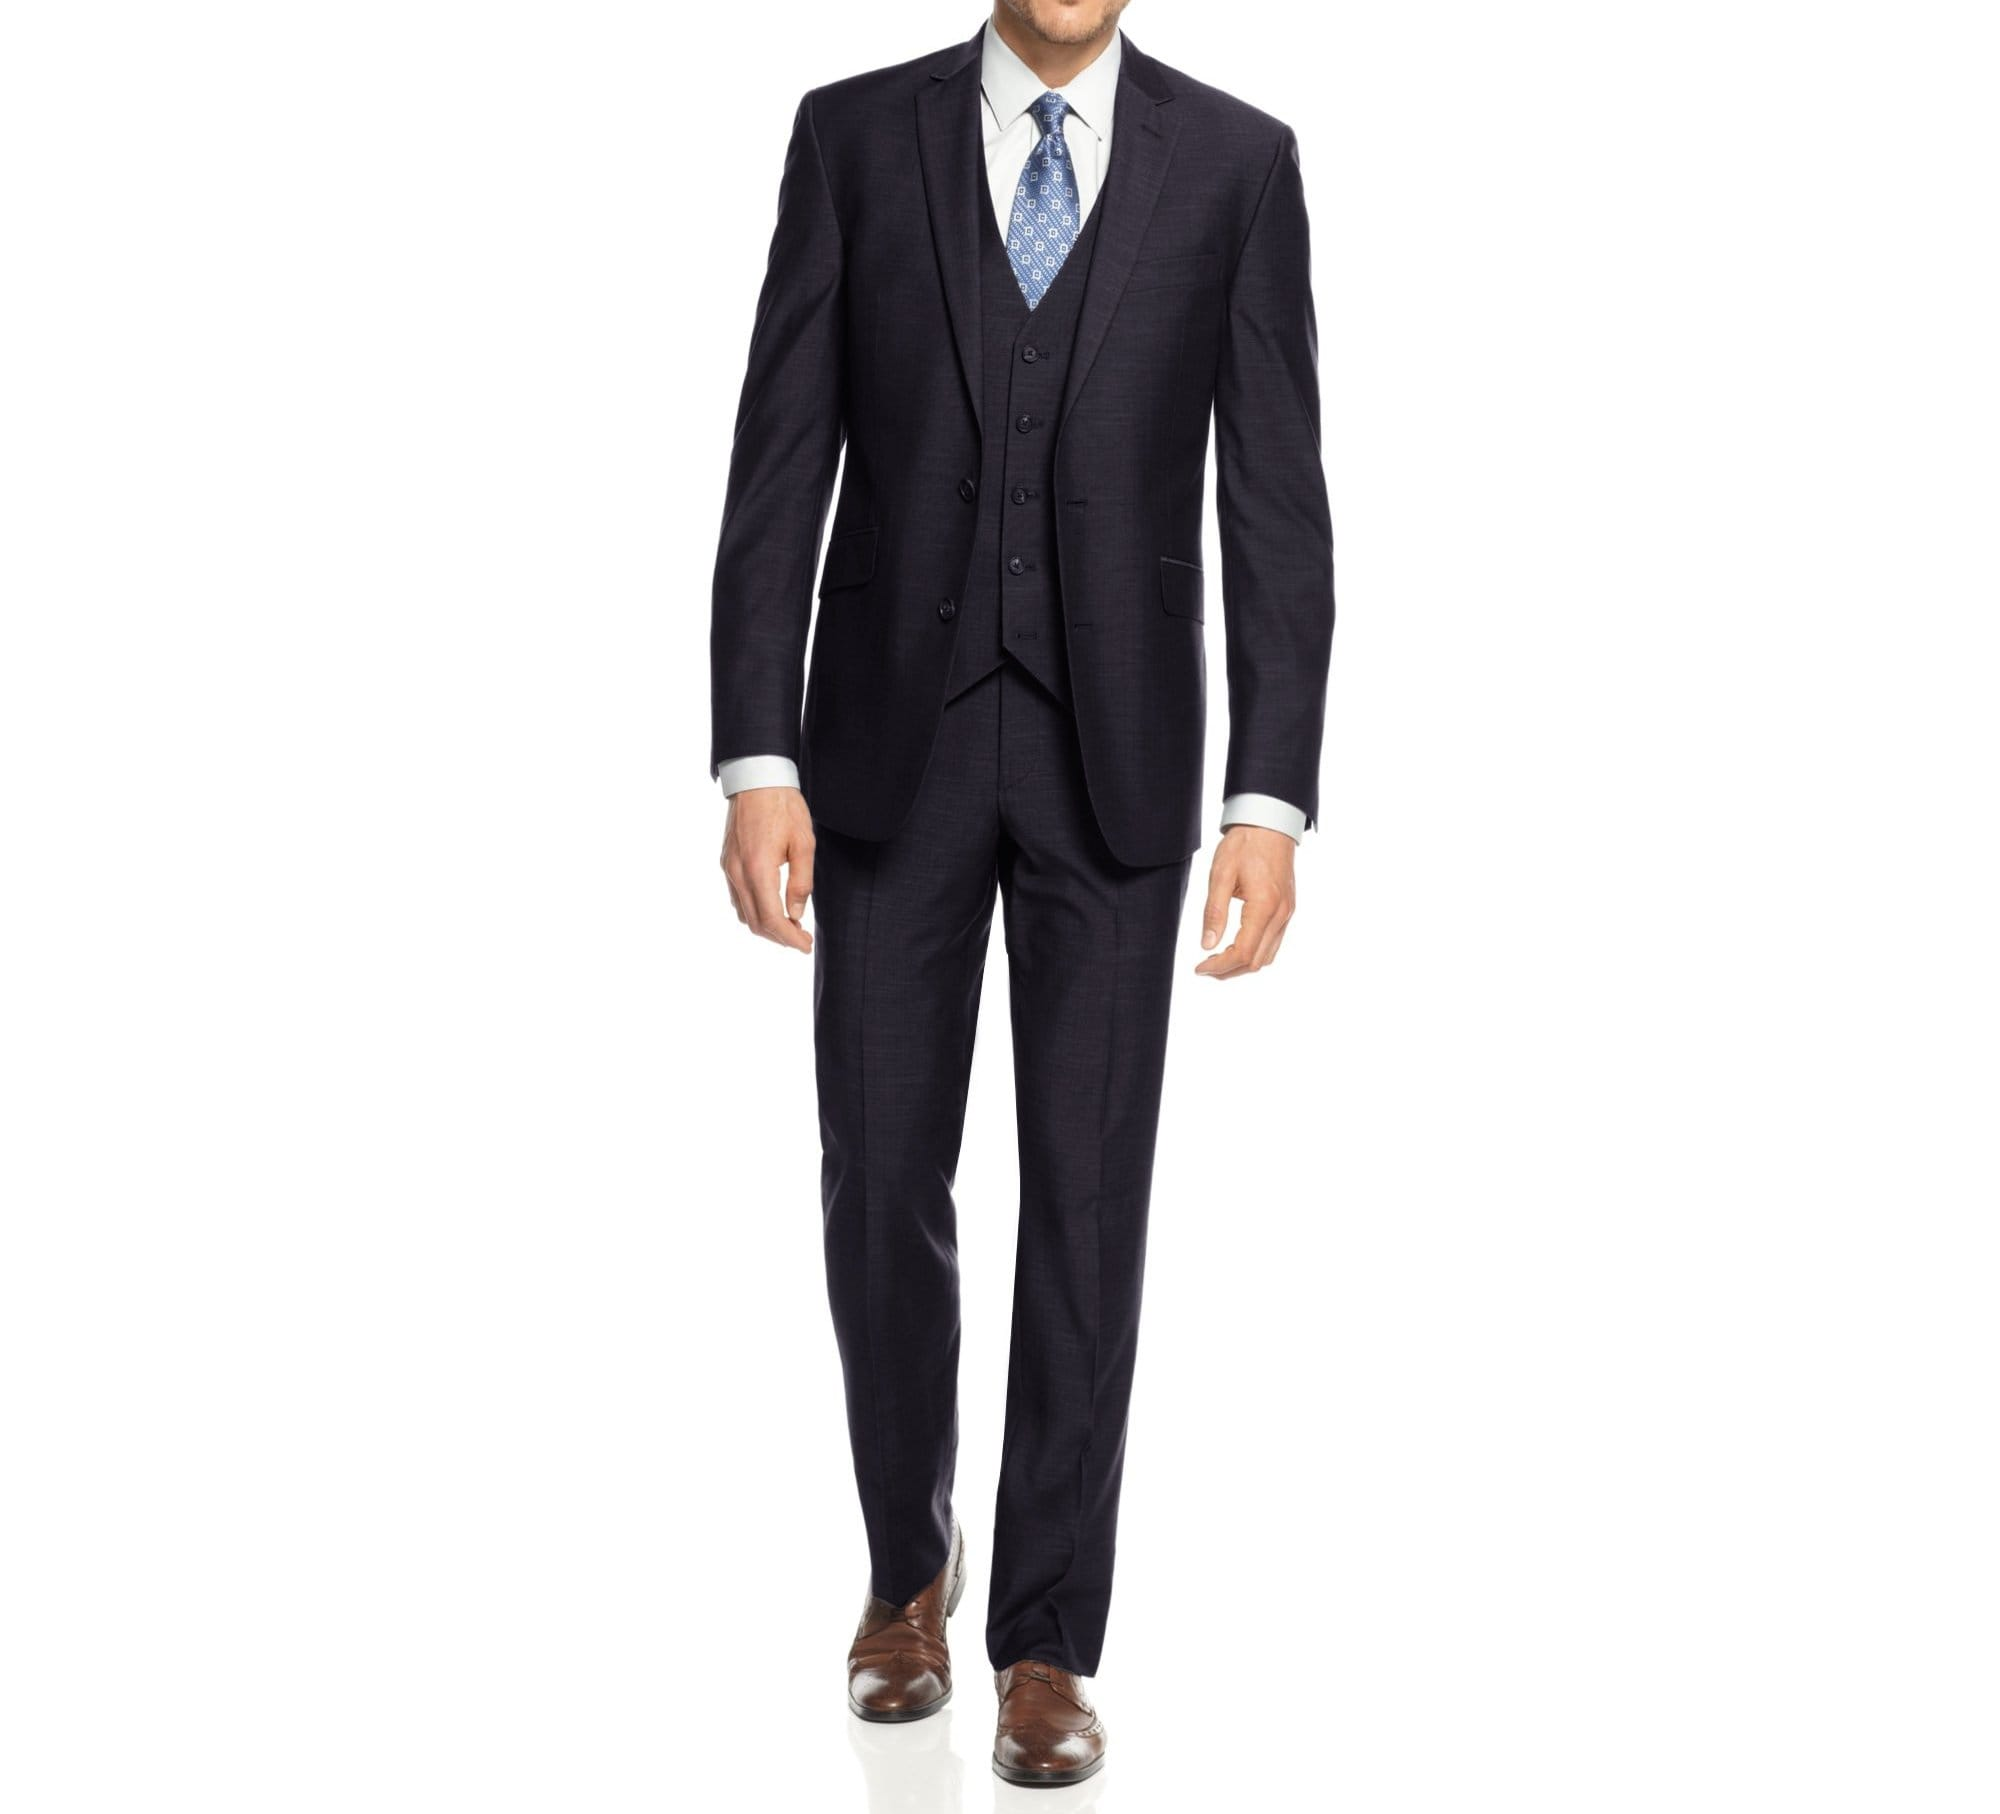 DAILY HAUTE Men's Suits NAVY / 36Rx30W Braveman Men's 3-Piece Three Piece Slim Fit Formal Cut Suit Set